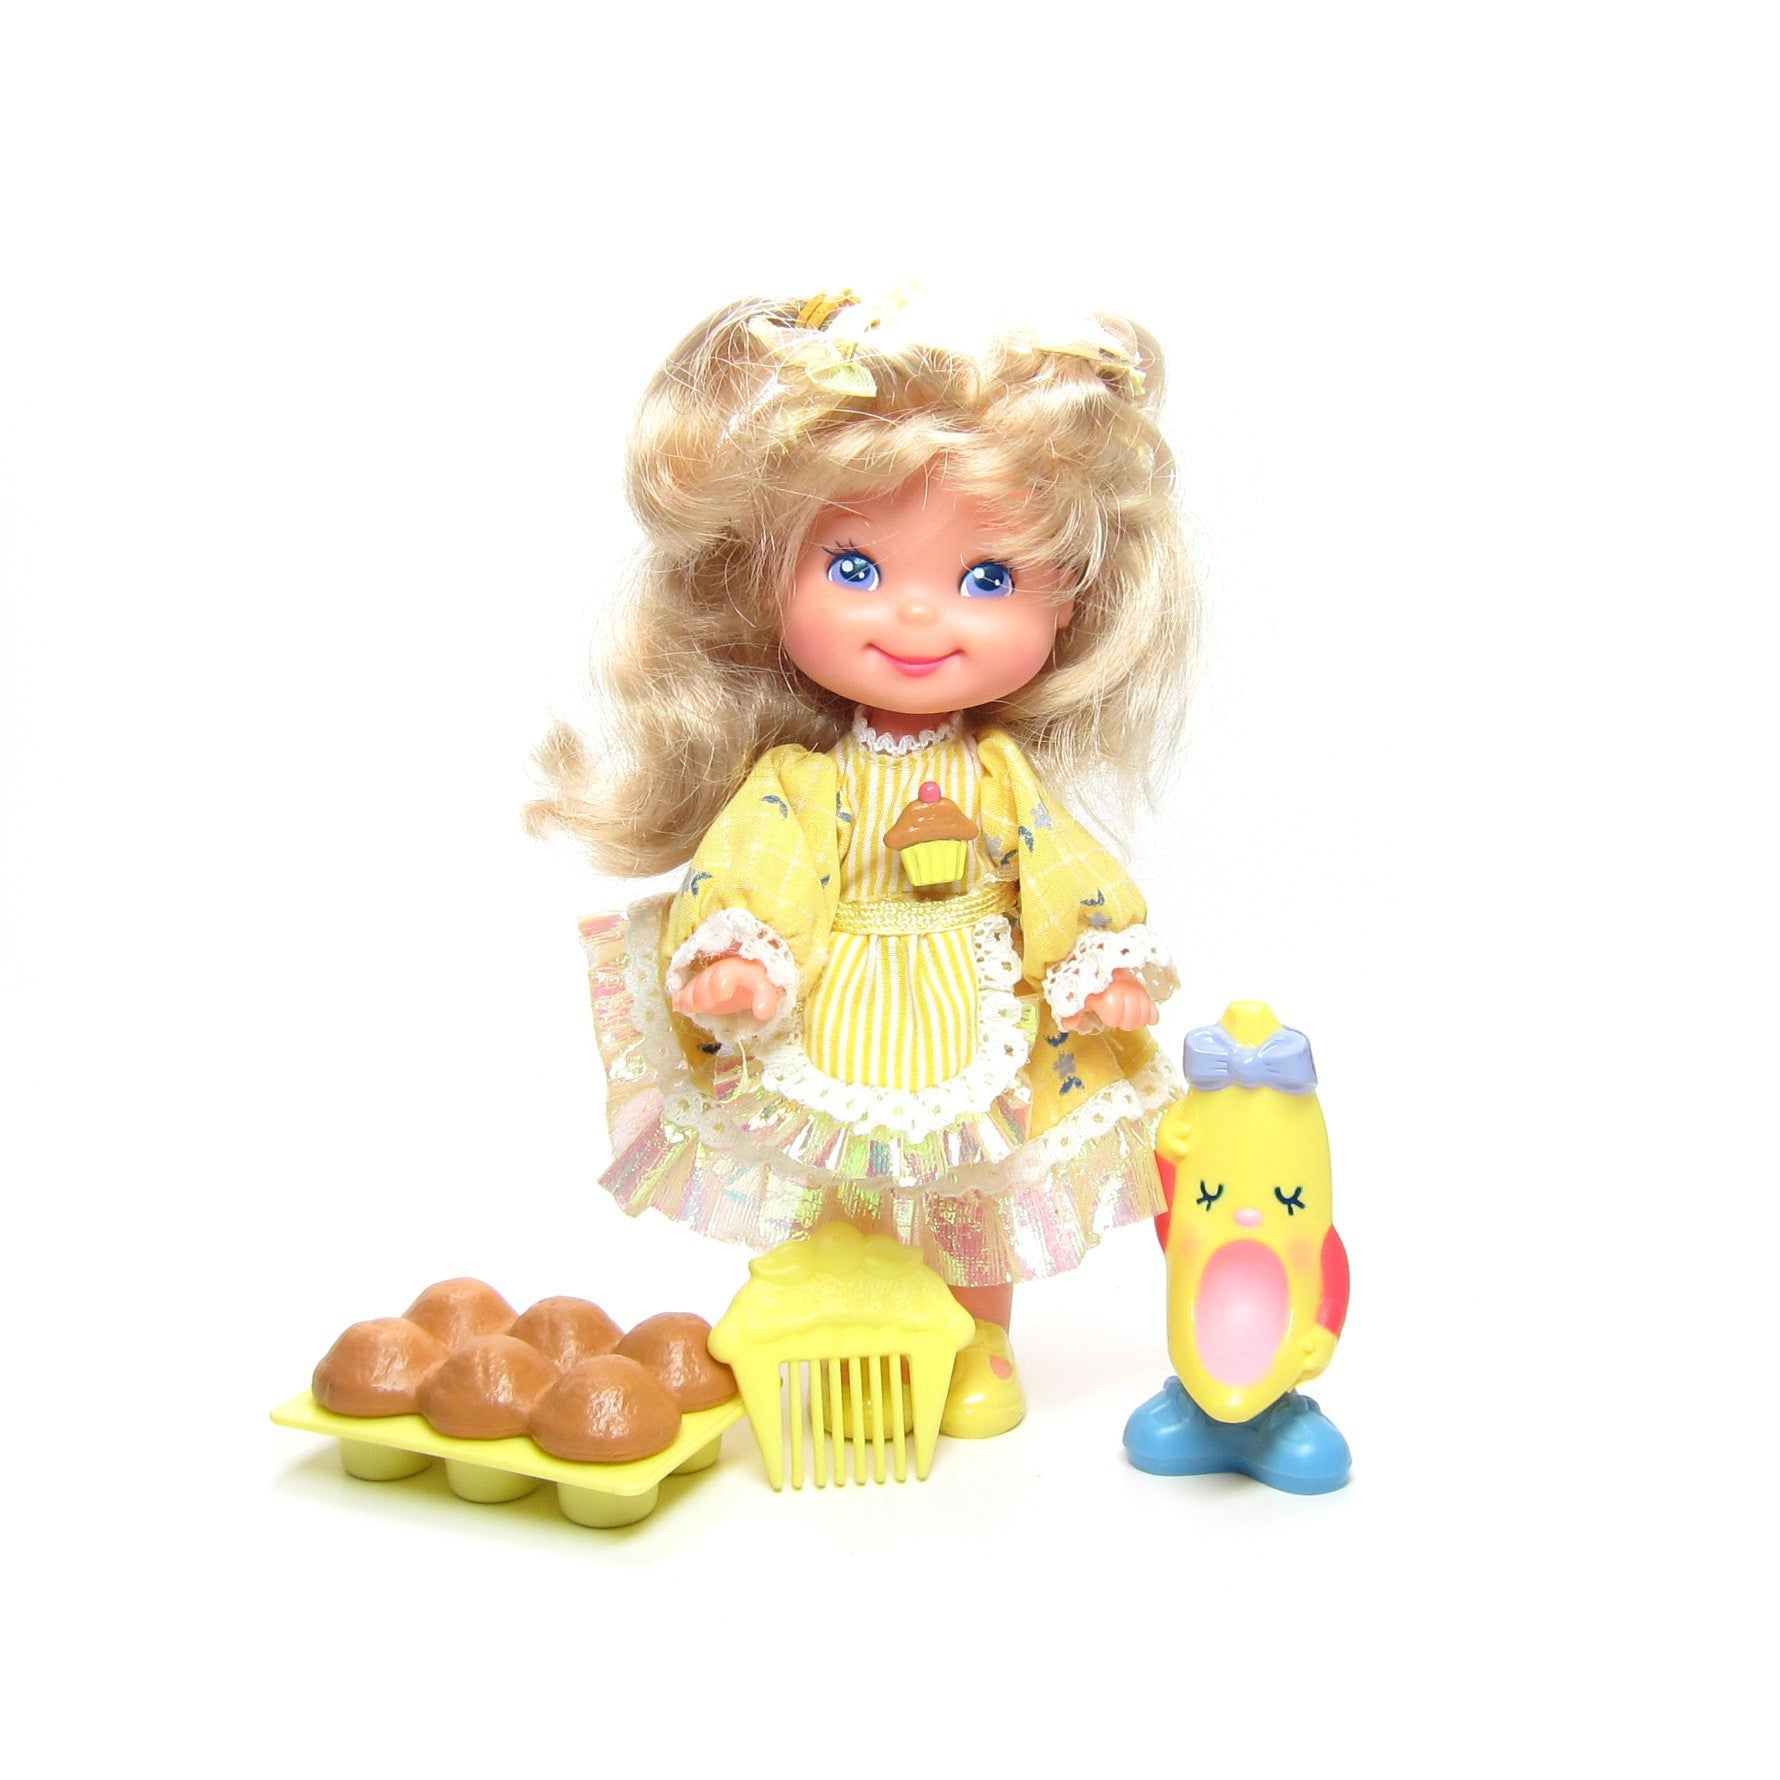 Banancy Cherry Merry Muffin doll with accessories